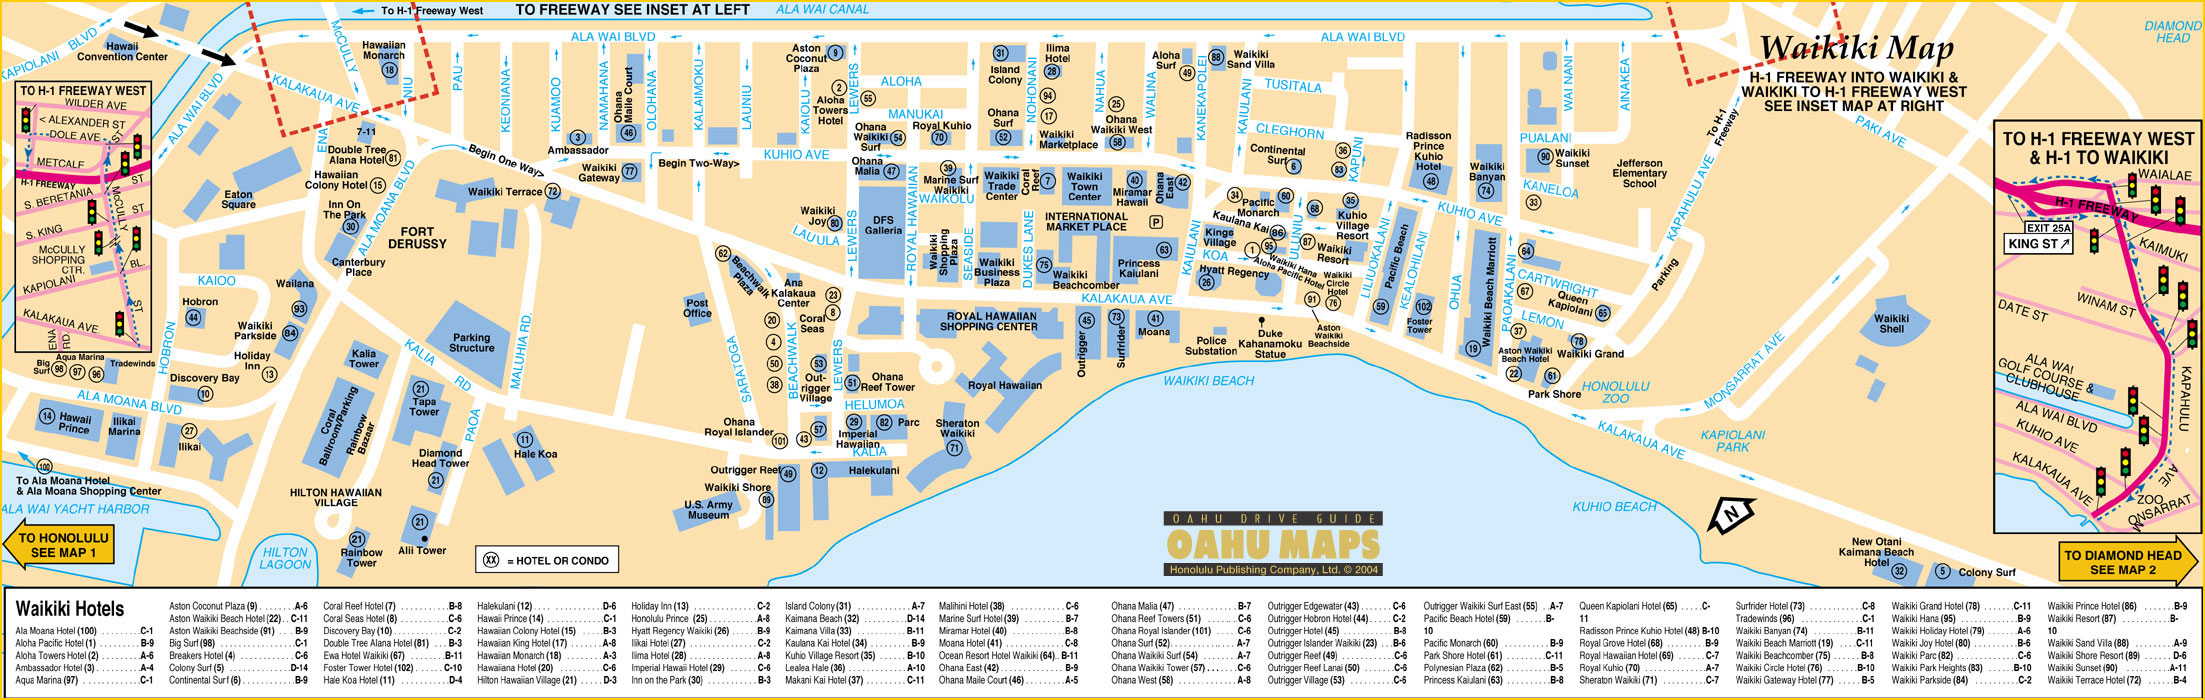 Waikiki Tourist Map  Waikiki Honolulu Hawaii  Mappery